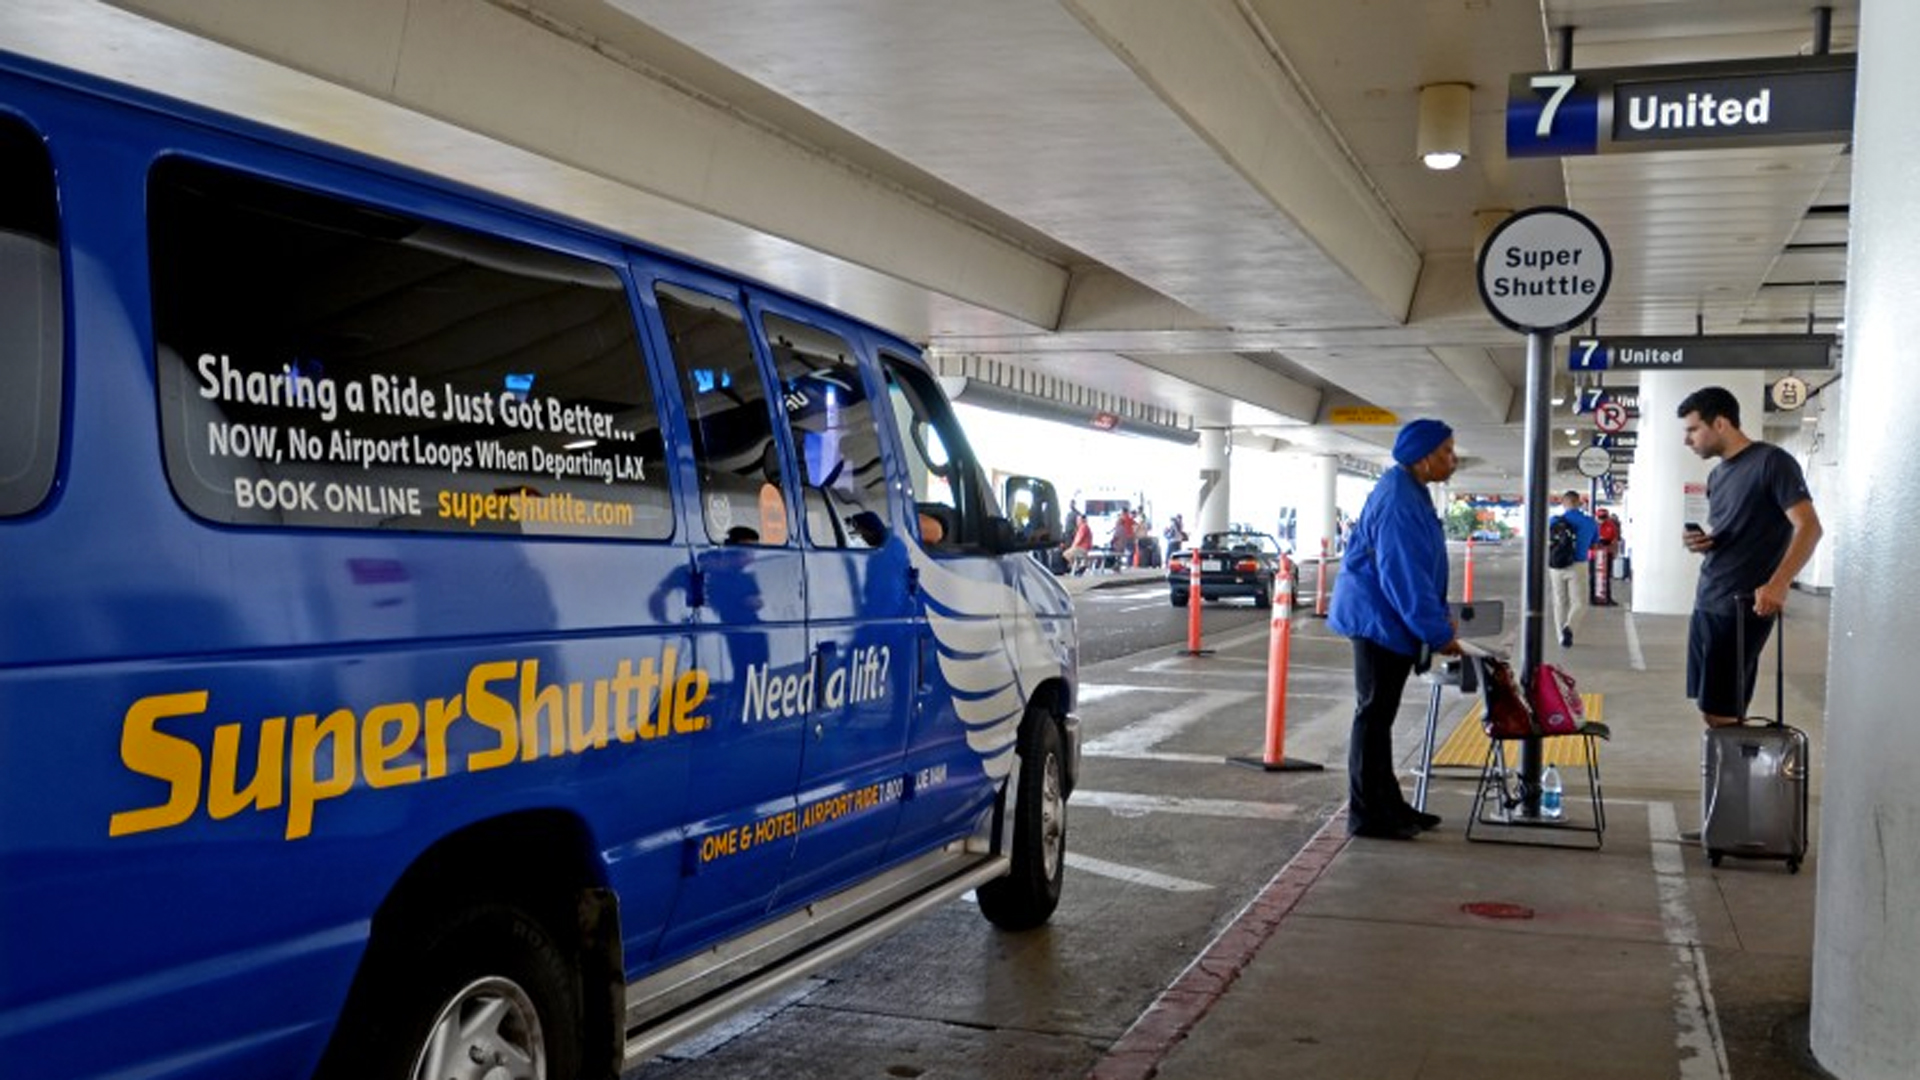 SuperShuttle has been serving passengers for 35 years.(Credit: Richard Derk / Los Angeles Times)